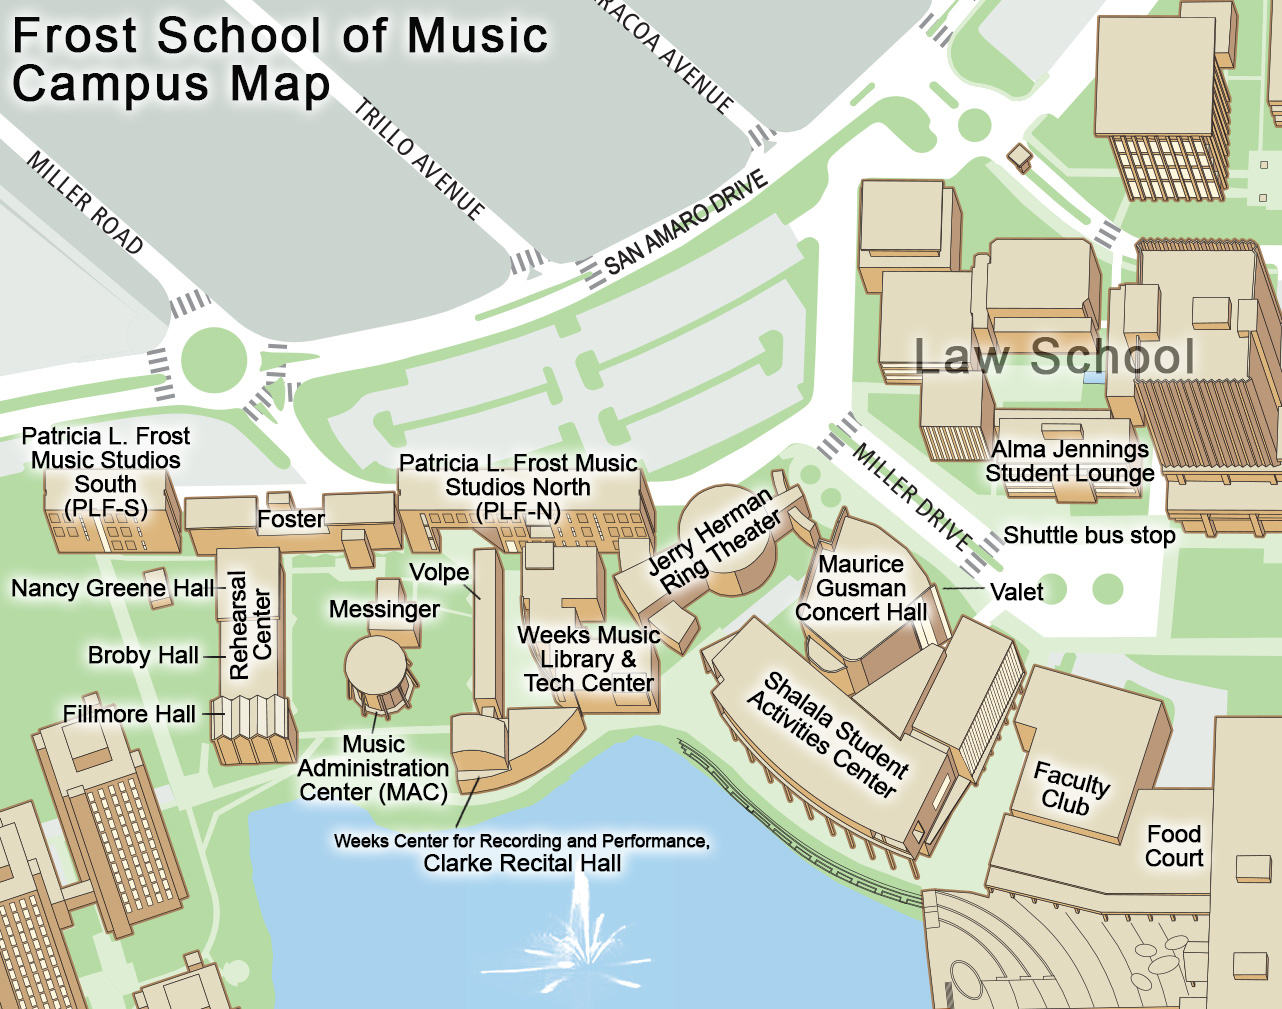 Map of the Frost specific Buildings at UM